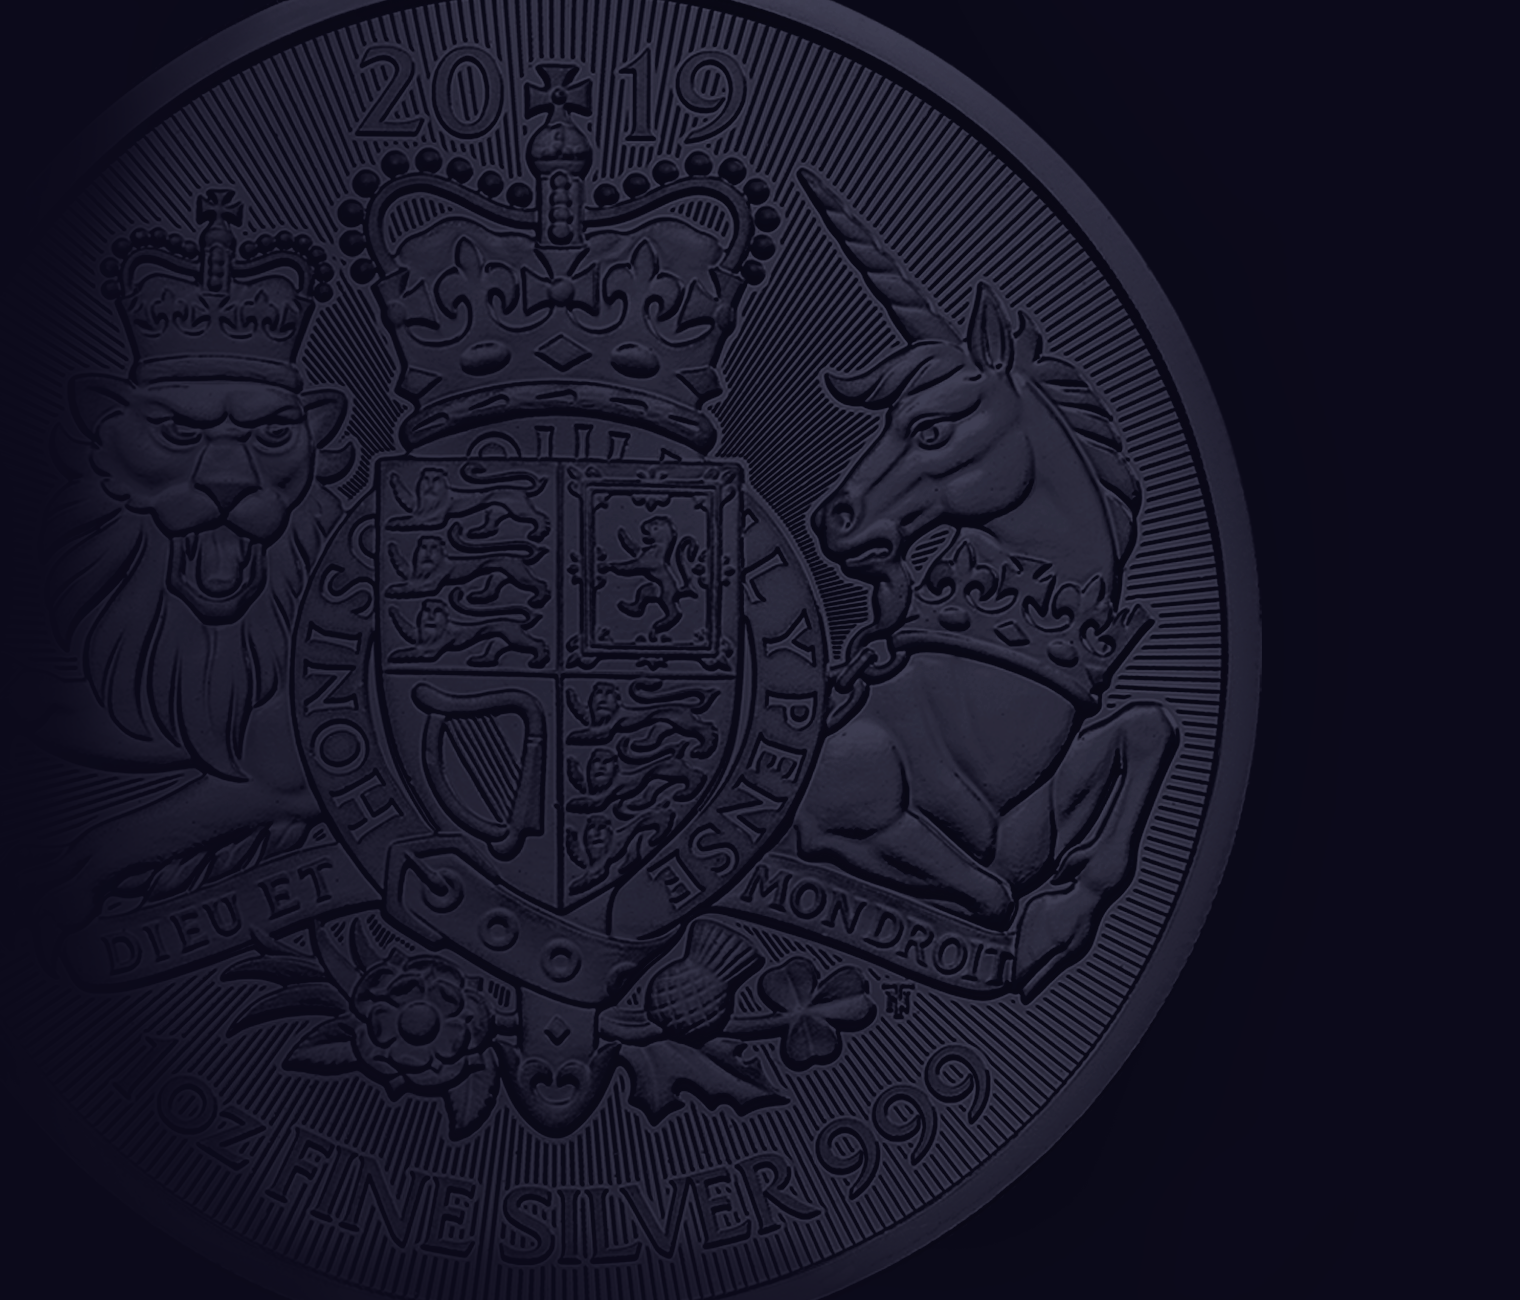 2019 UK Coat of Arms 1oz Silver Coin